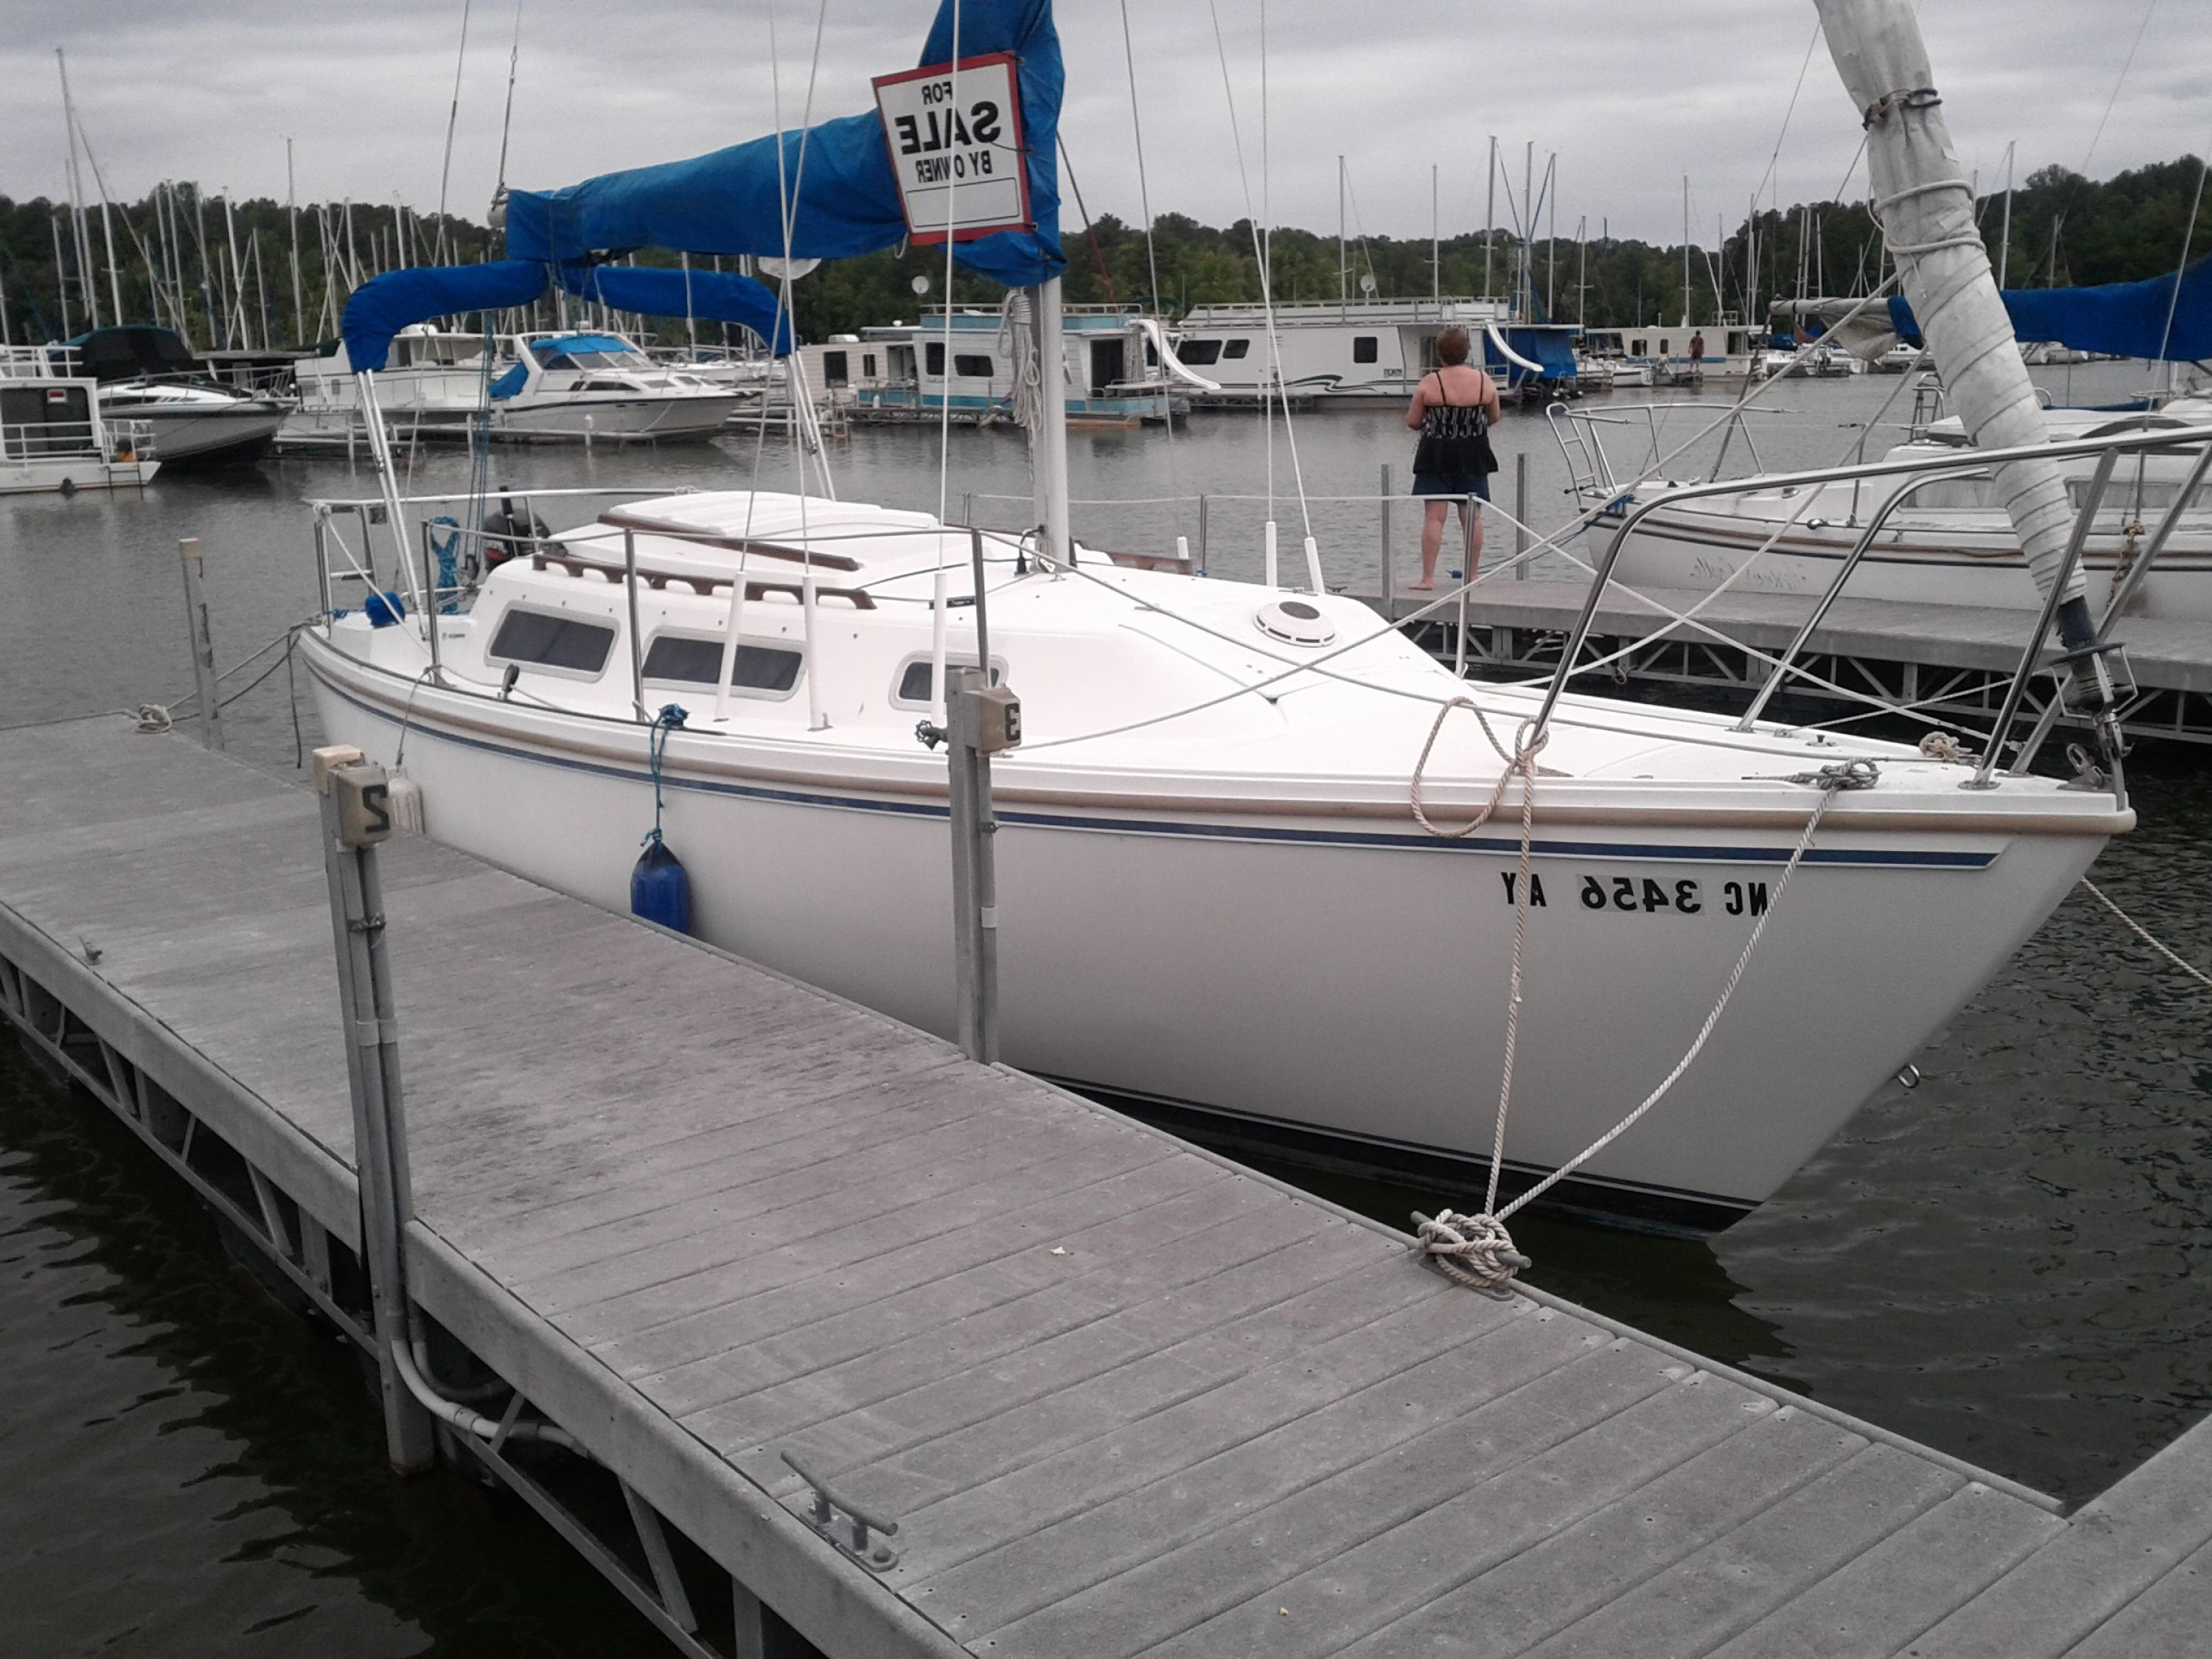 Vanguard Vector Sailboat: Sailboat Charter Miami With Large Sailboats For Sale Together With Average Sailboat Speed Or Sailboats For Sale By Owner Also